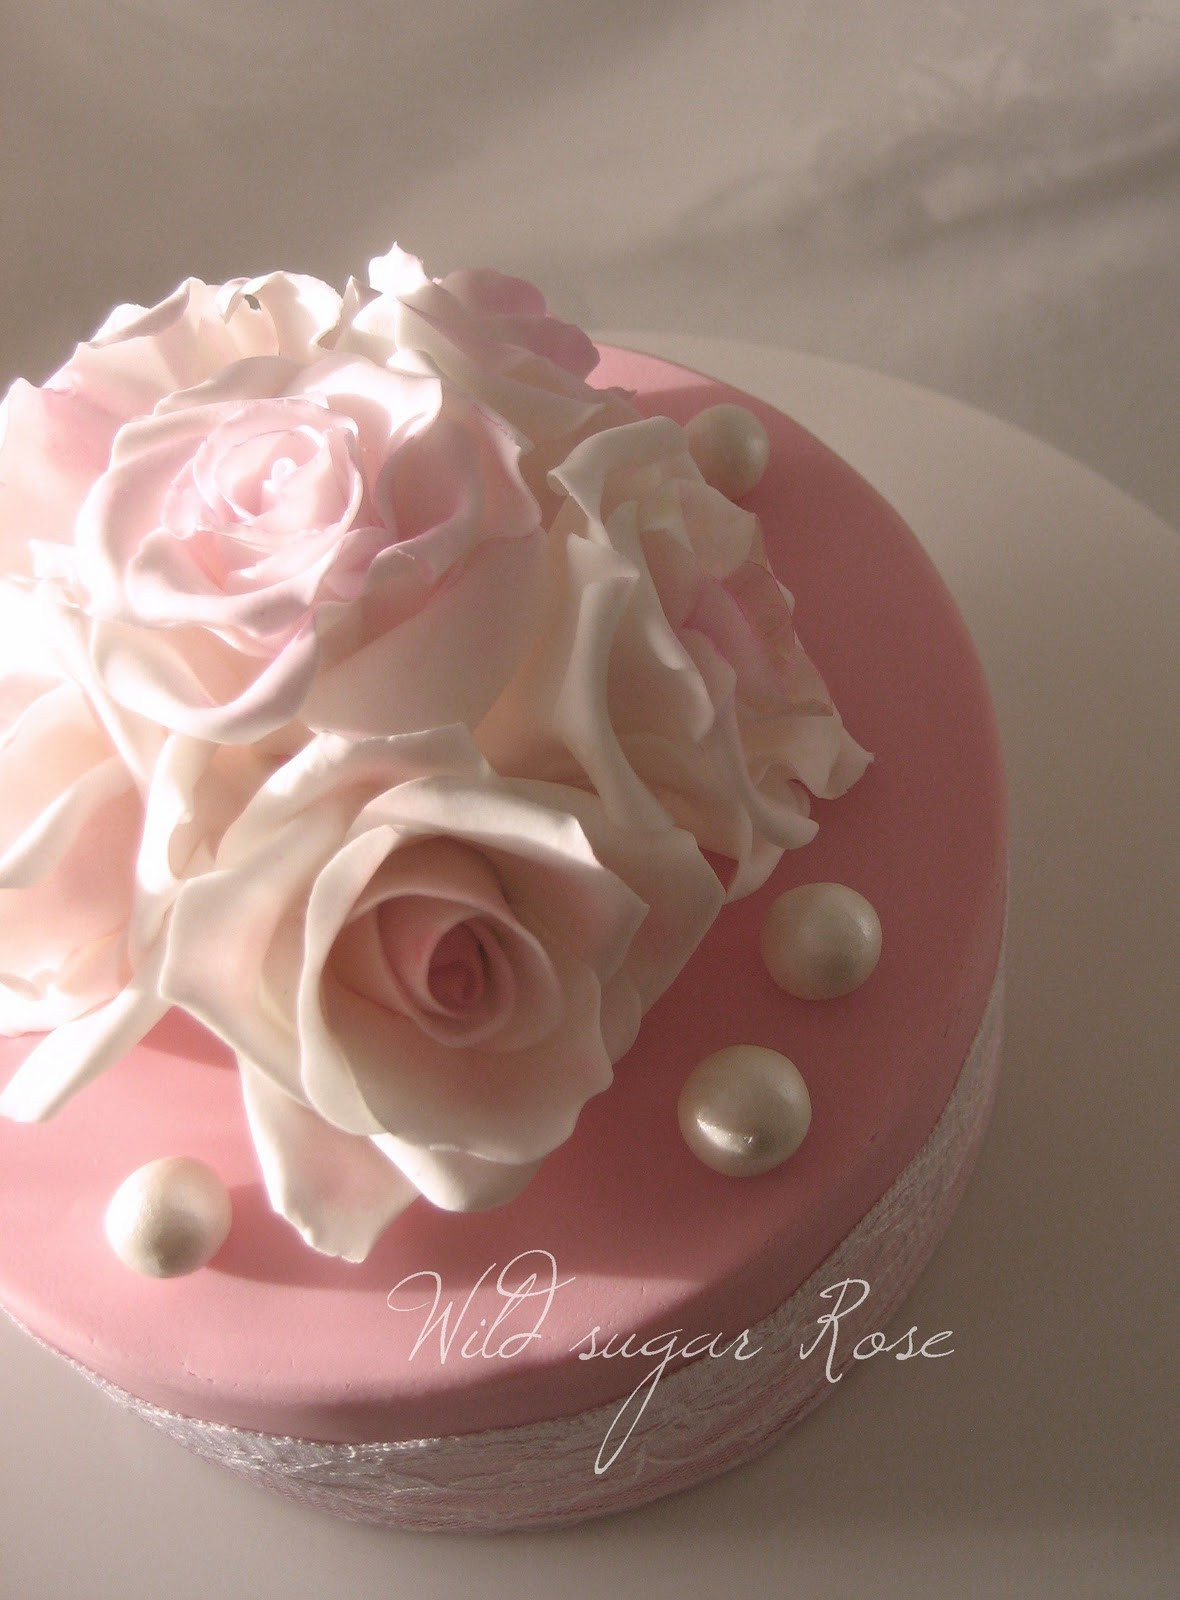 roses and pearls - photo #4